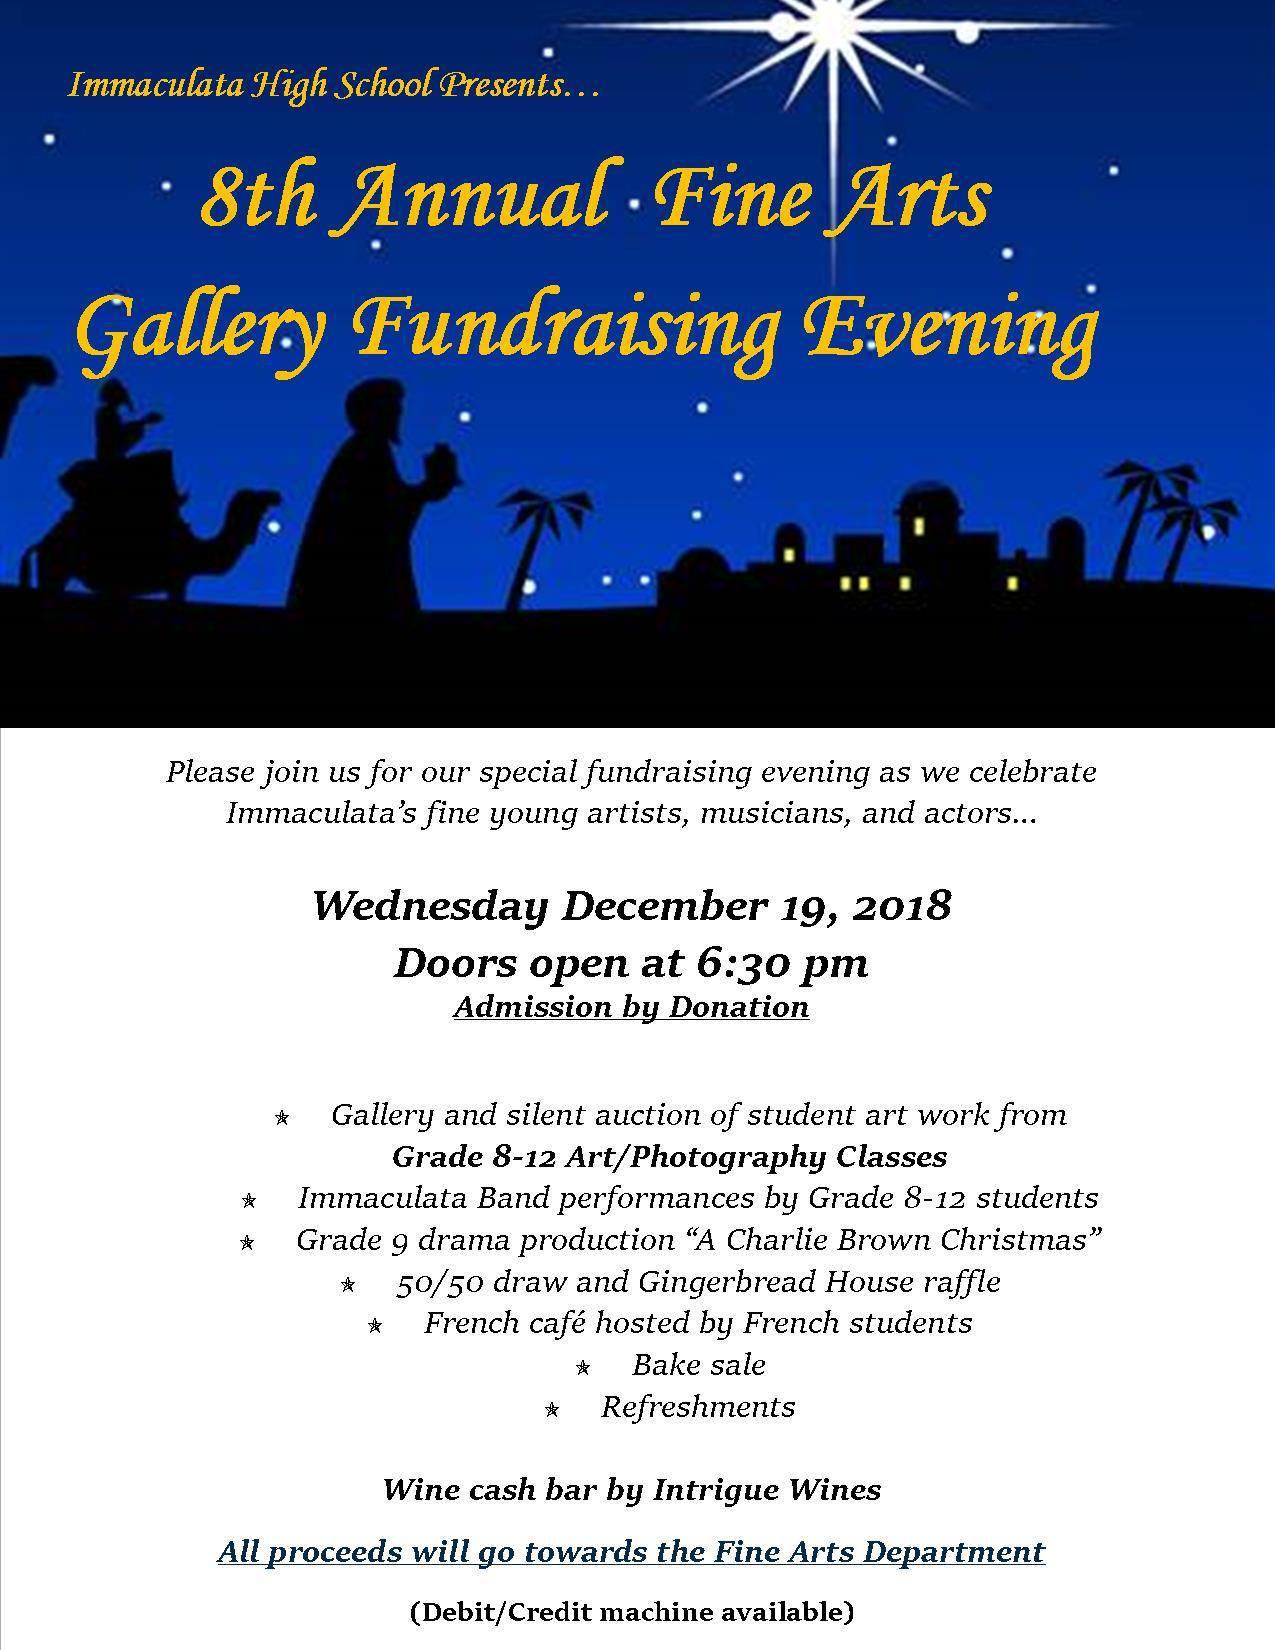 8th Annual Fine Arts Gallery Fundraising Evening